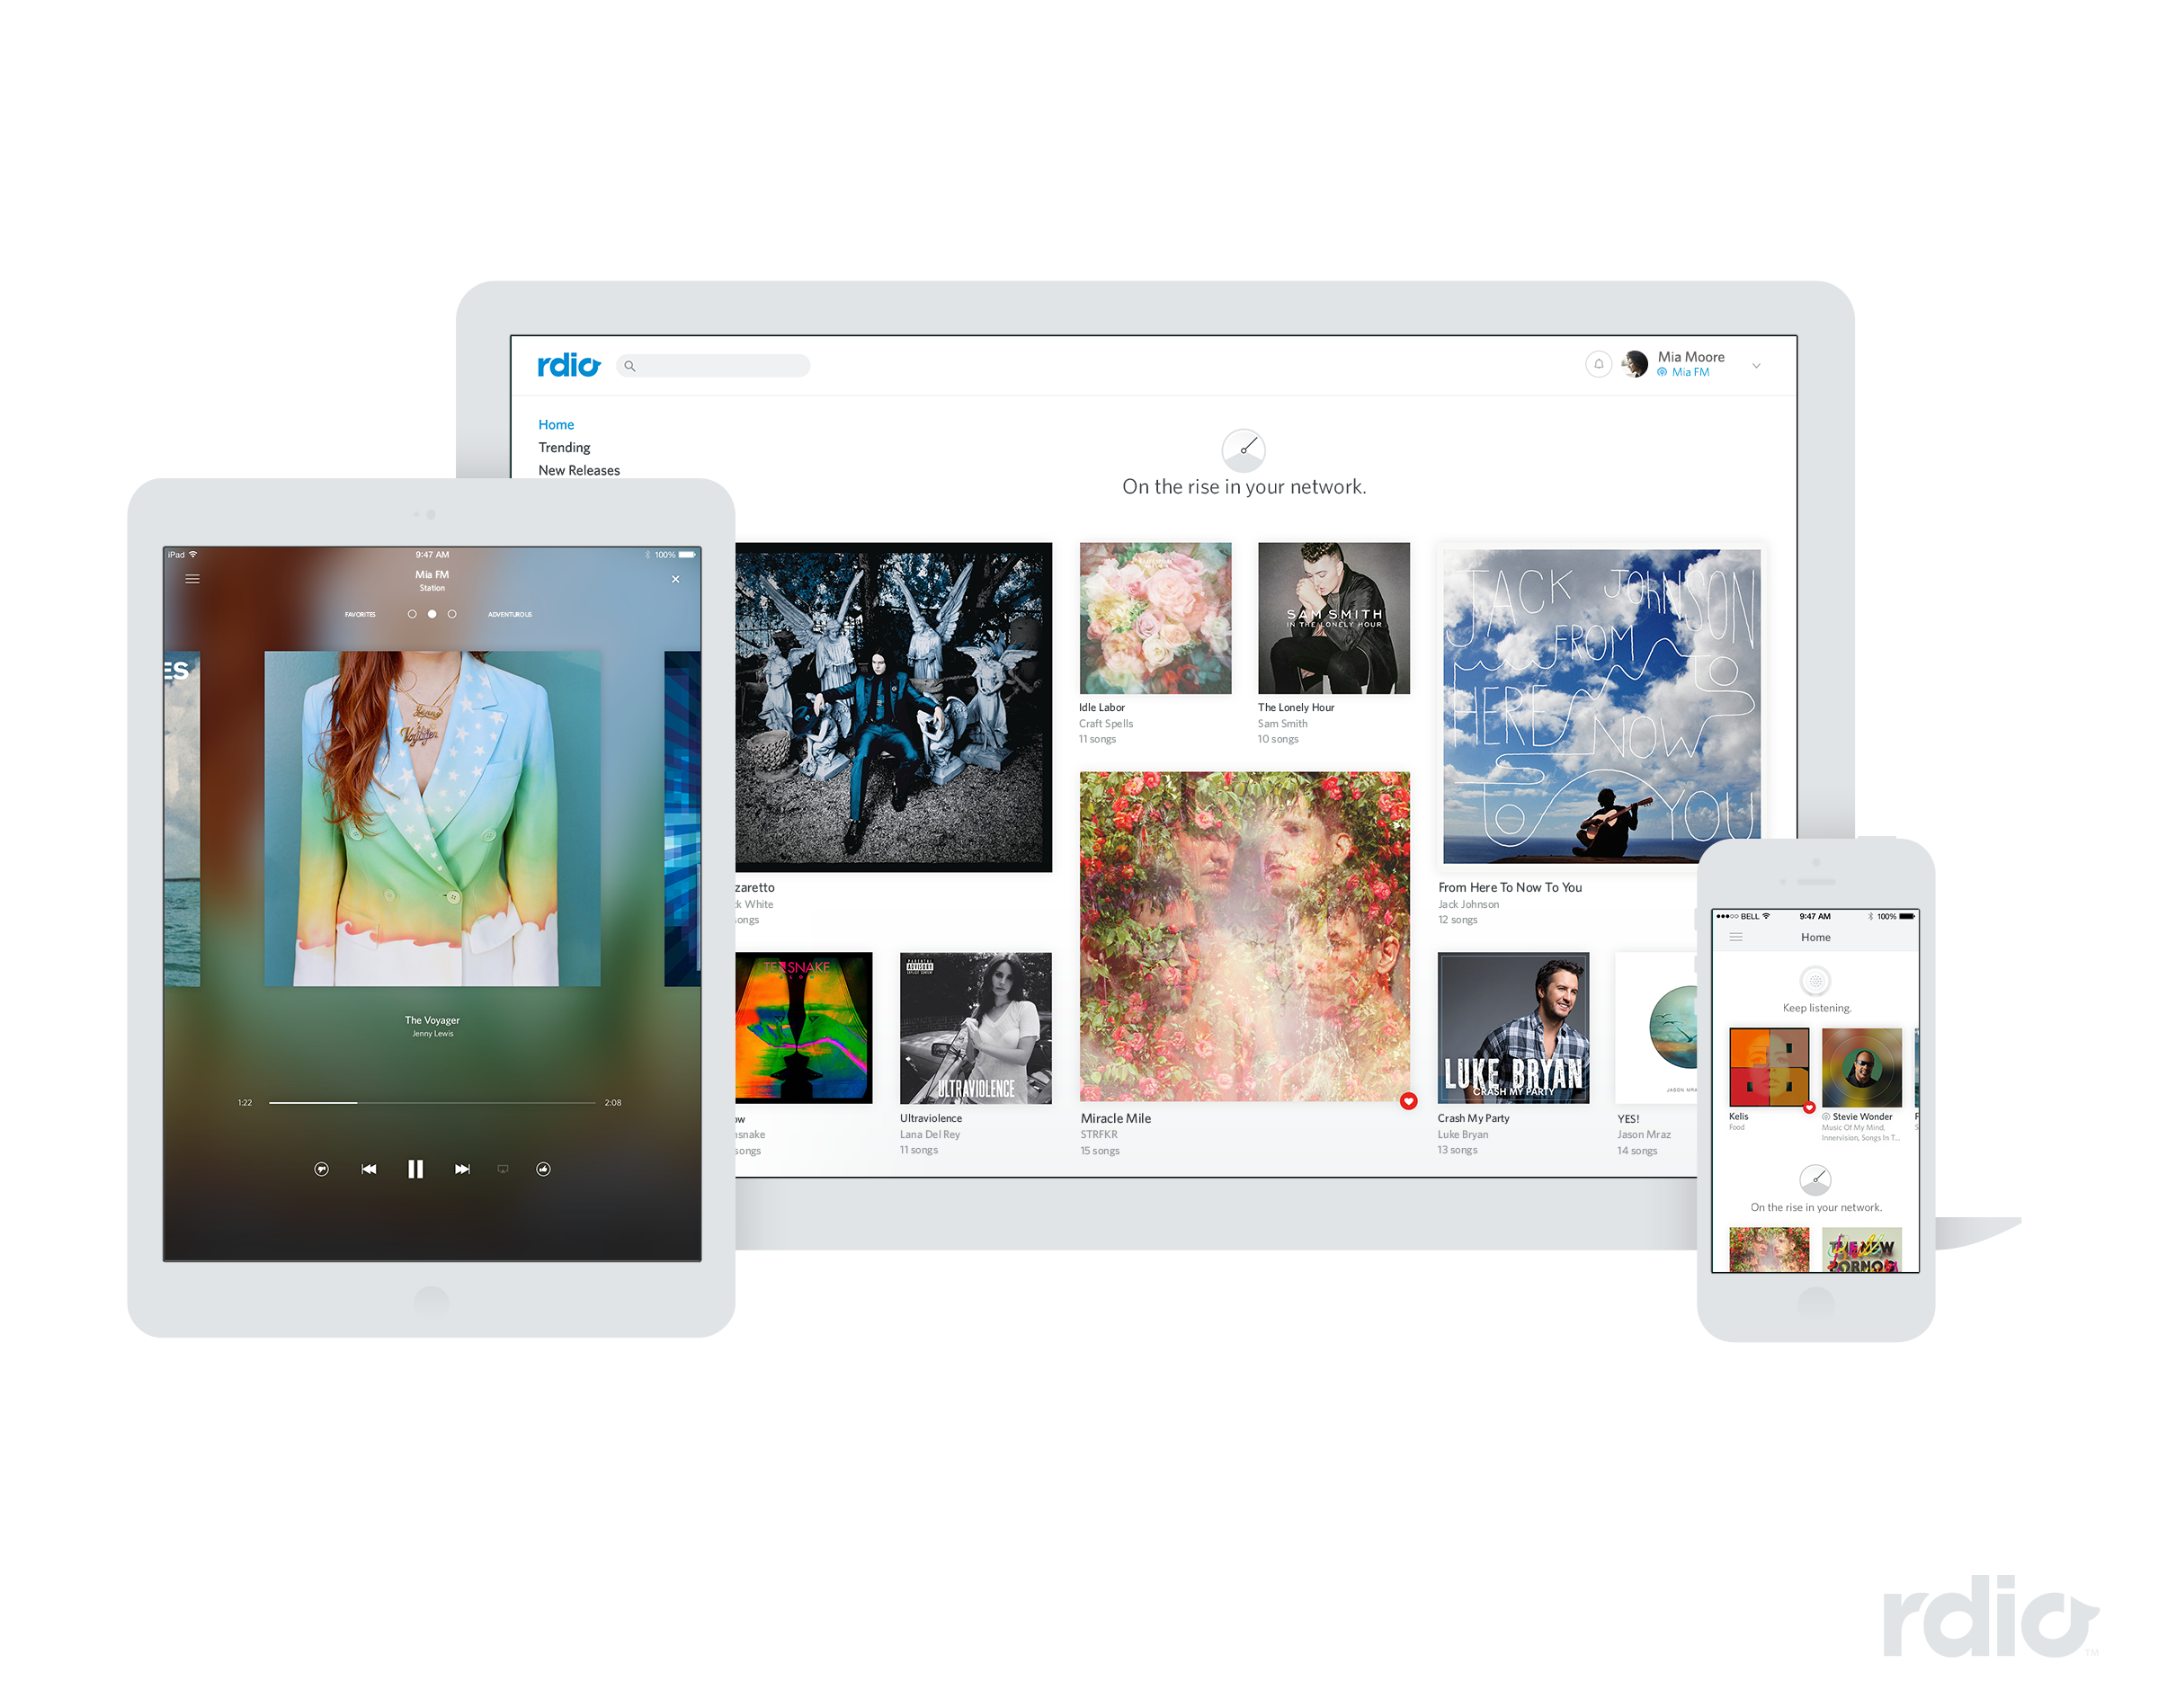 rdio-for-ios